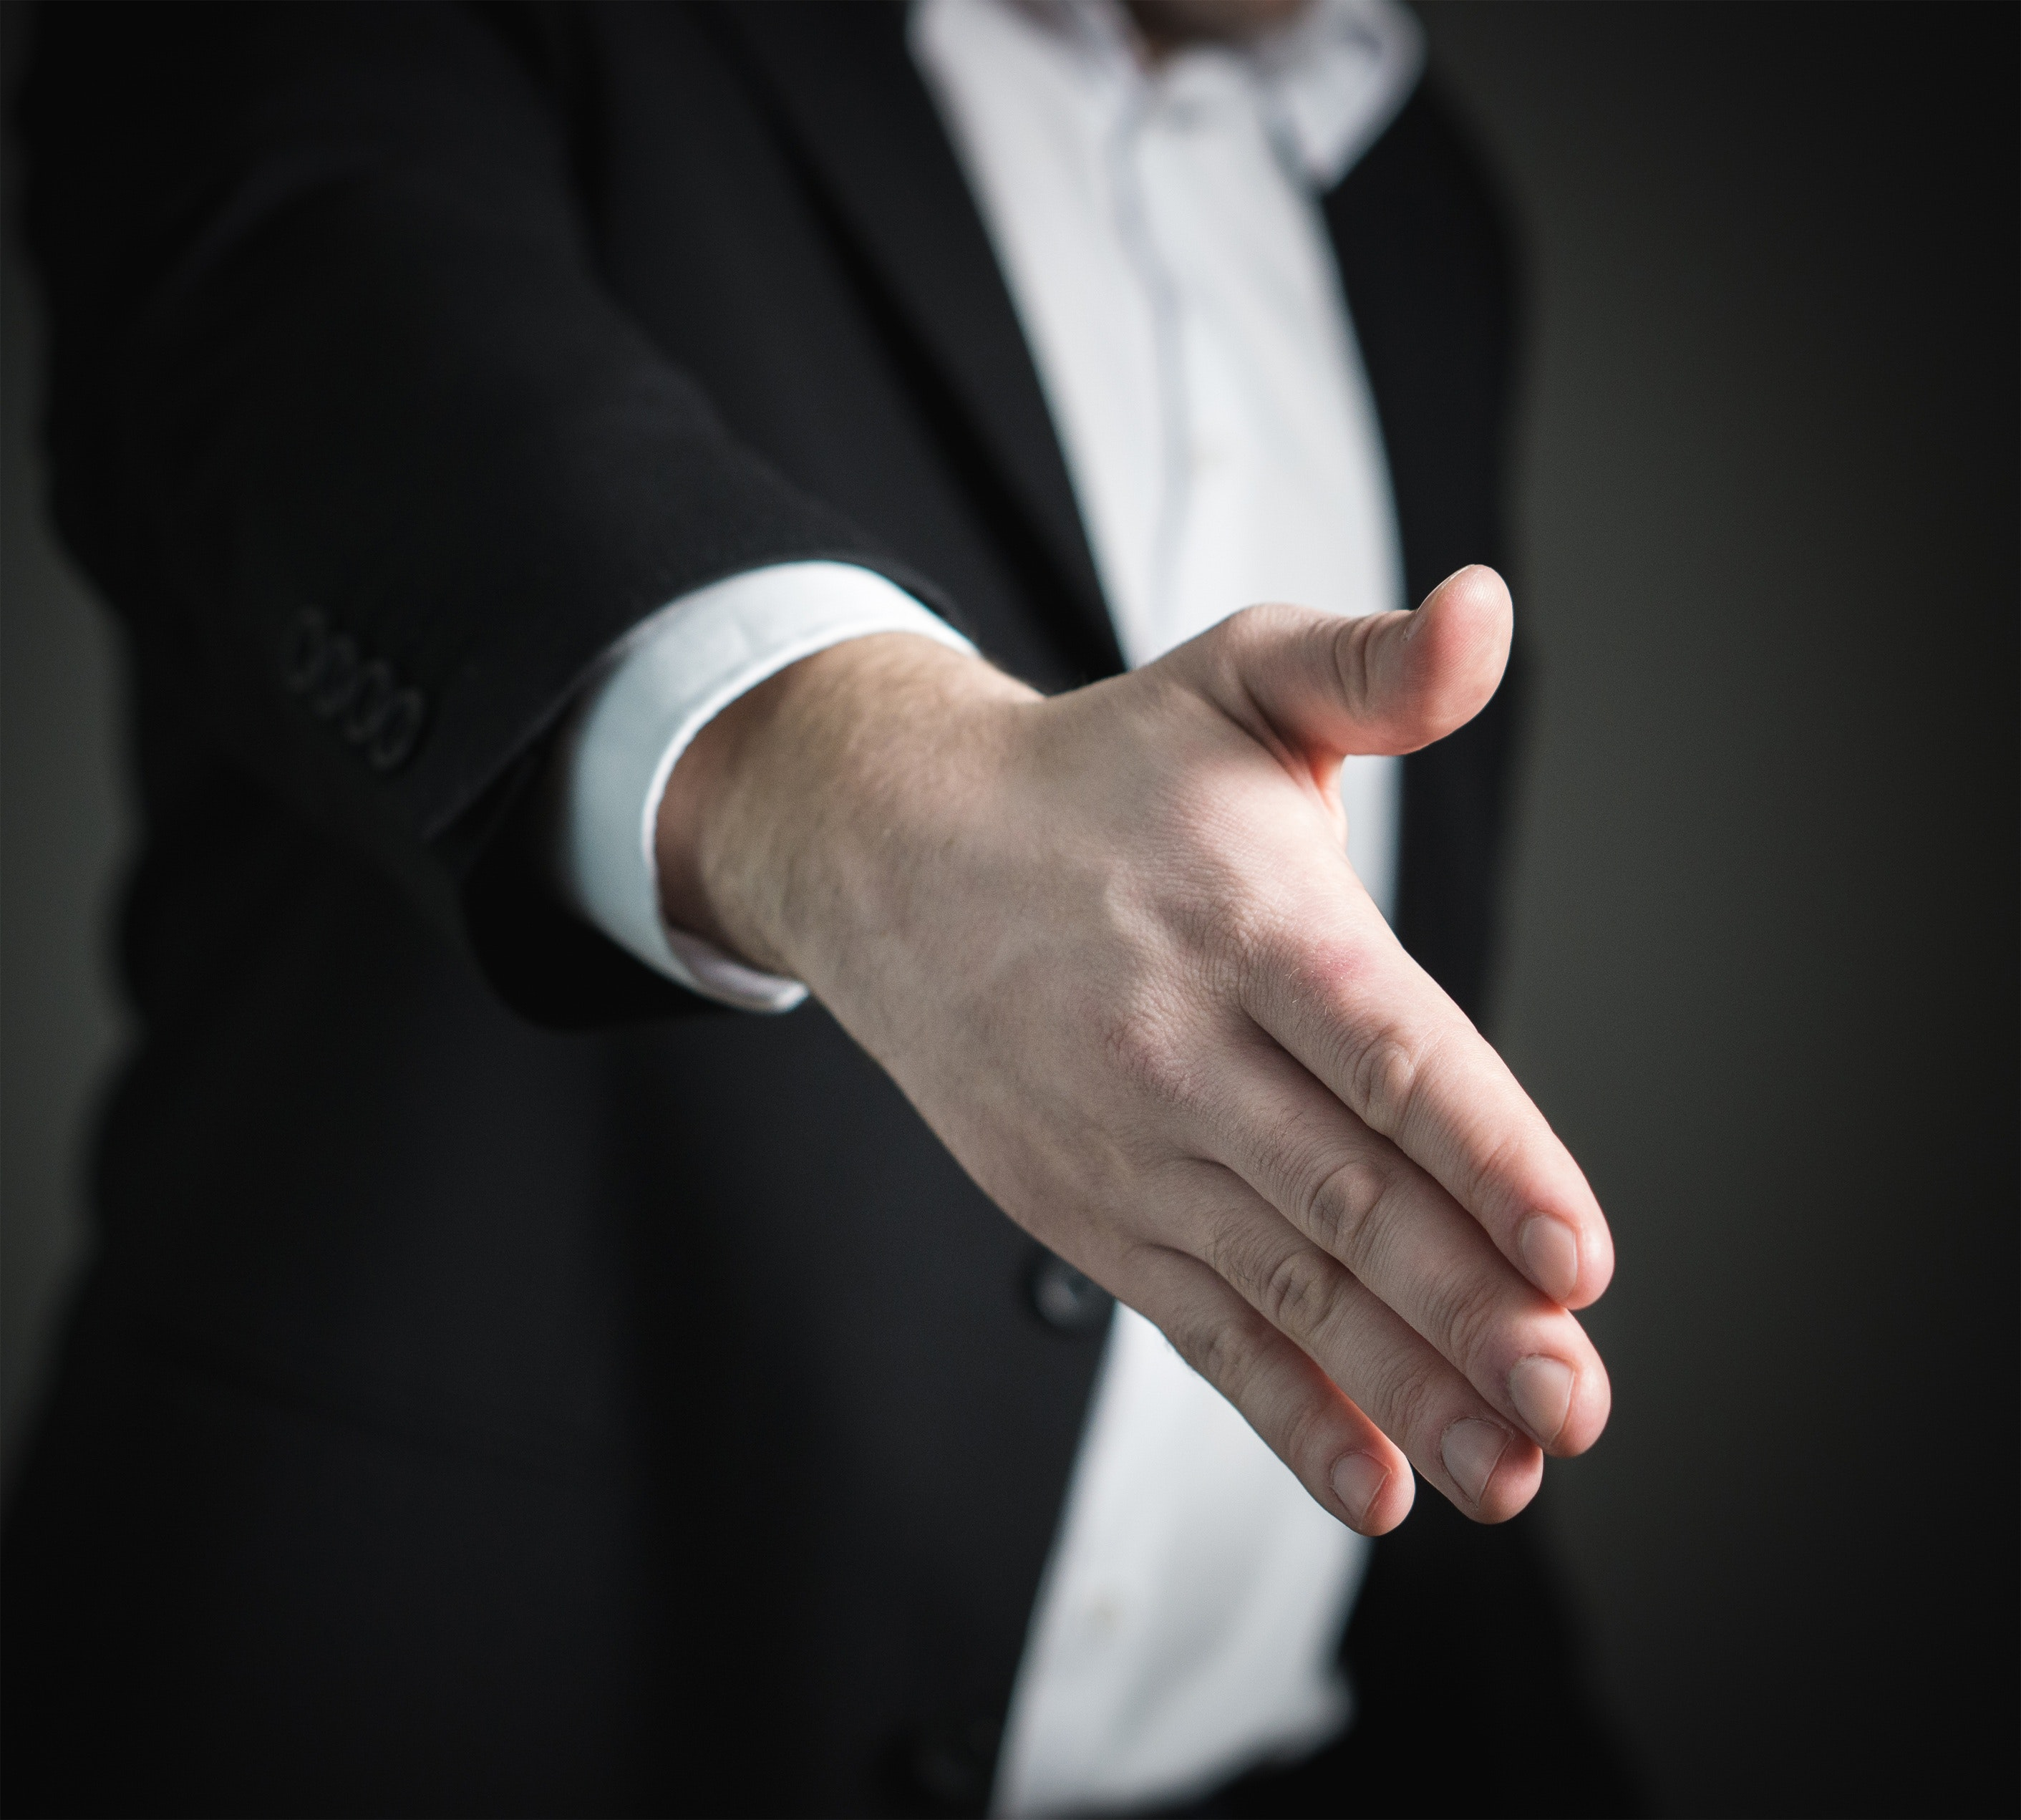 Close-up of Hand, Adult, Hand, Shake, Settlement, HQ Photo